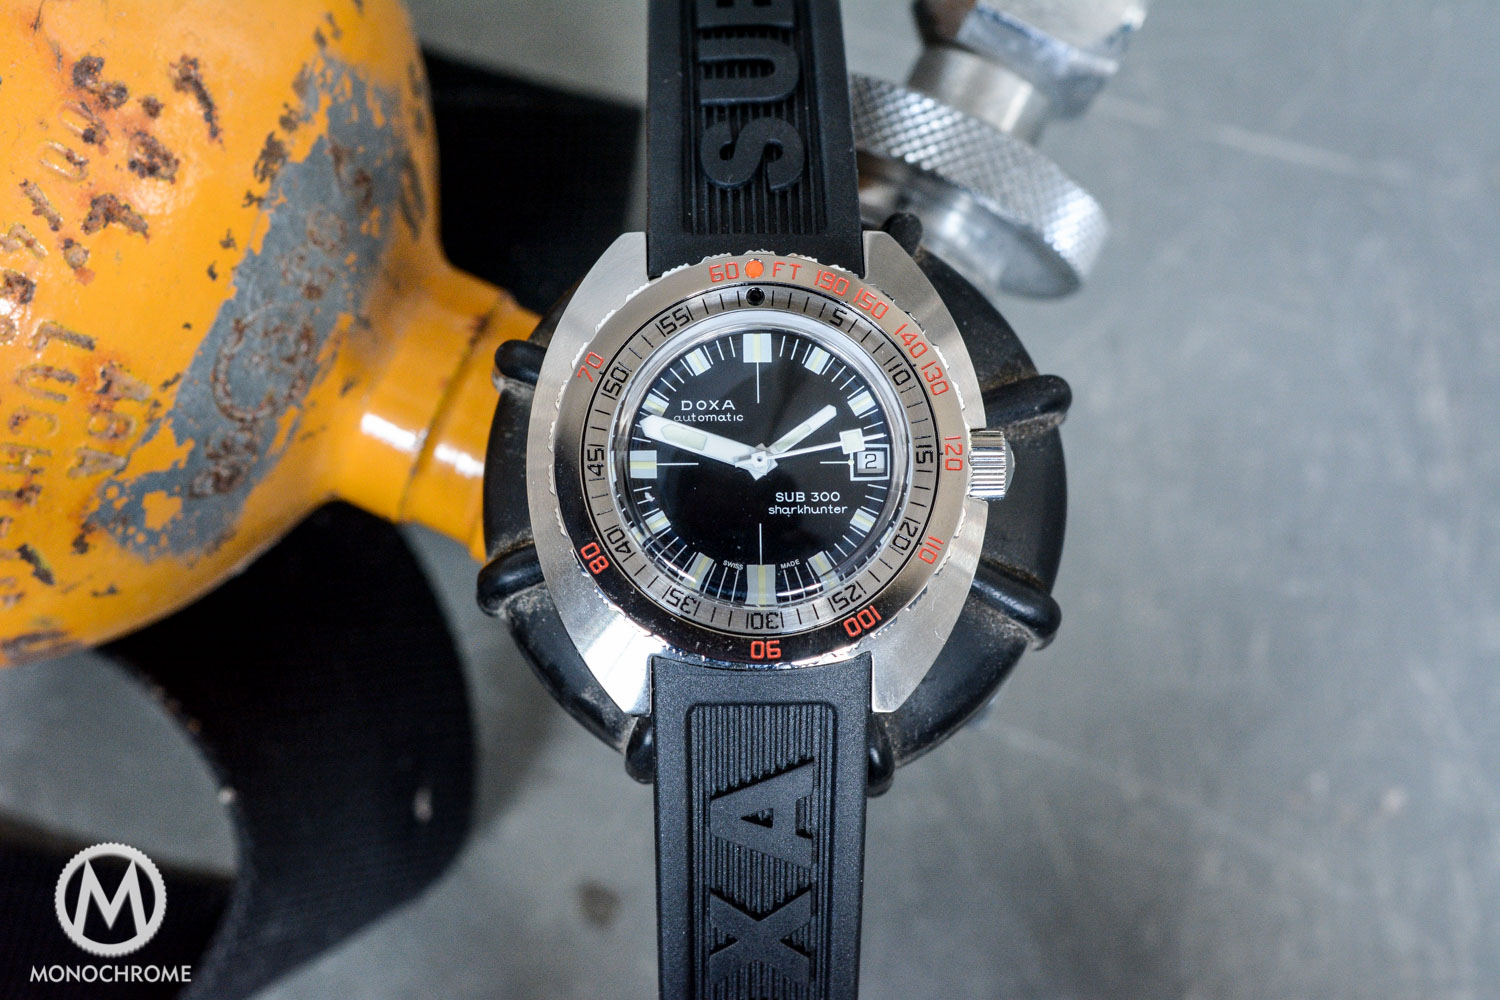 dress watch vs dive watch historical perspective u2013 the doxa sub 300 the dive watch